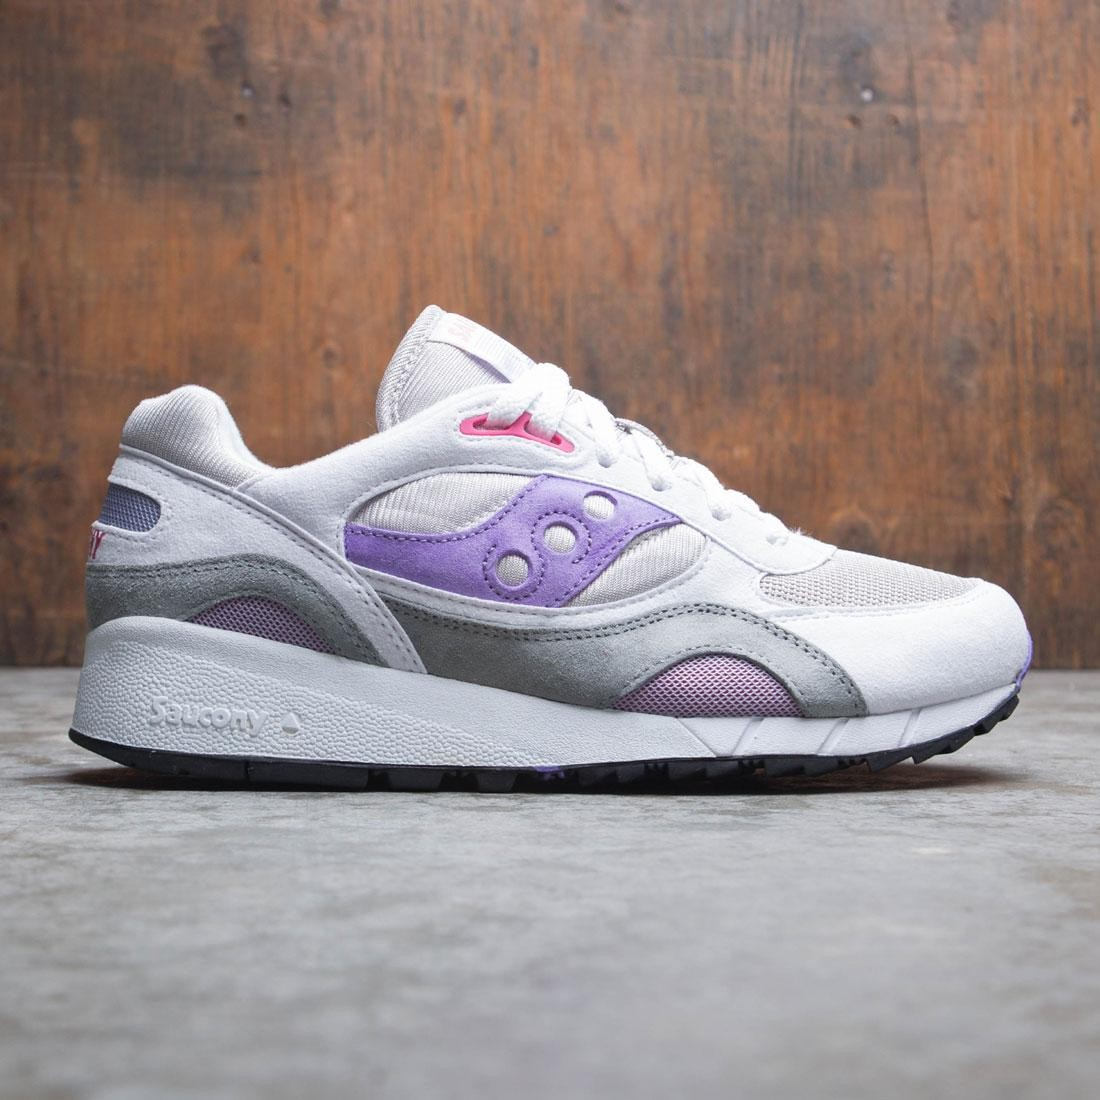 Saucony Men Shadow 6000 (white / gray / purple)